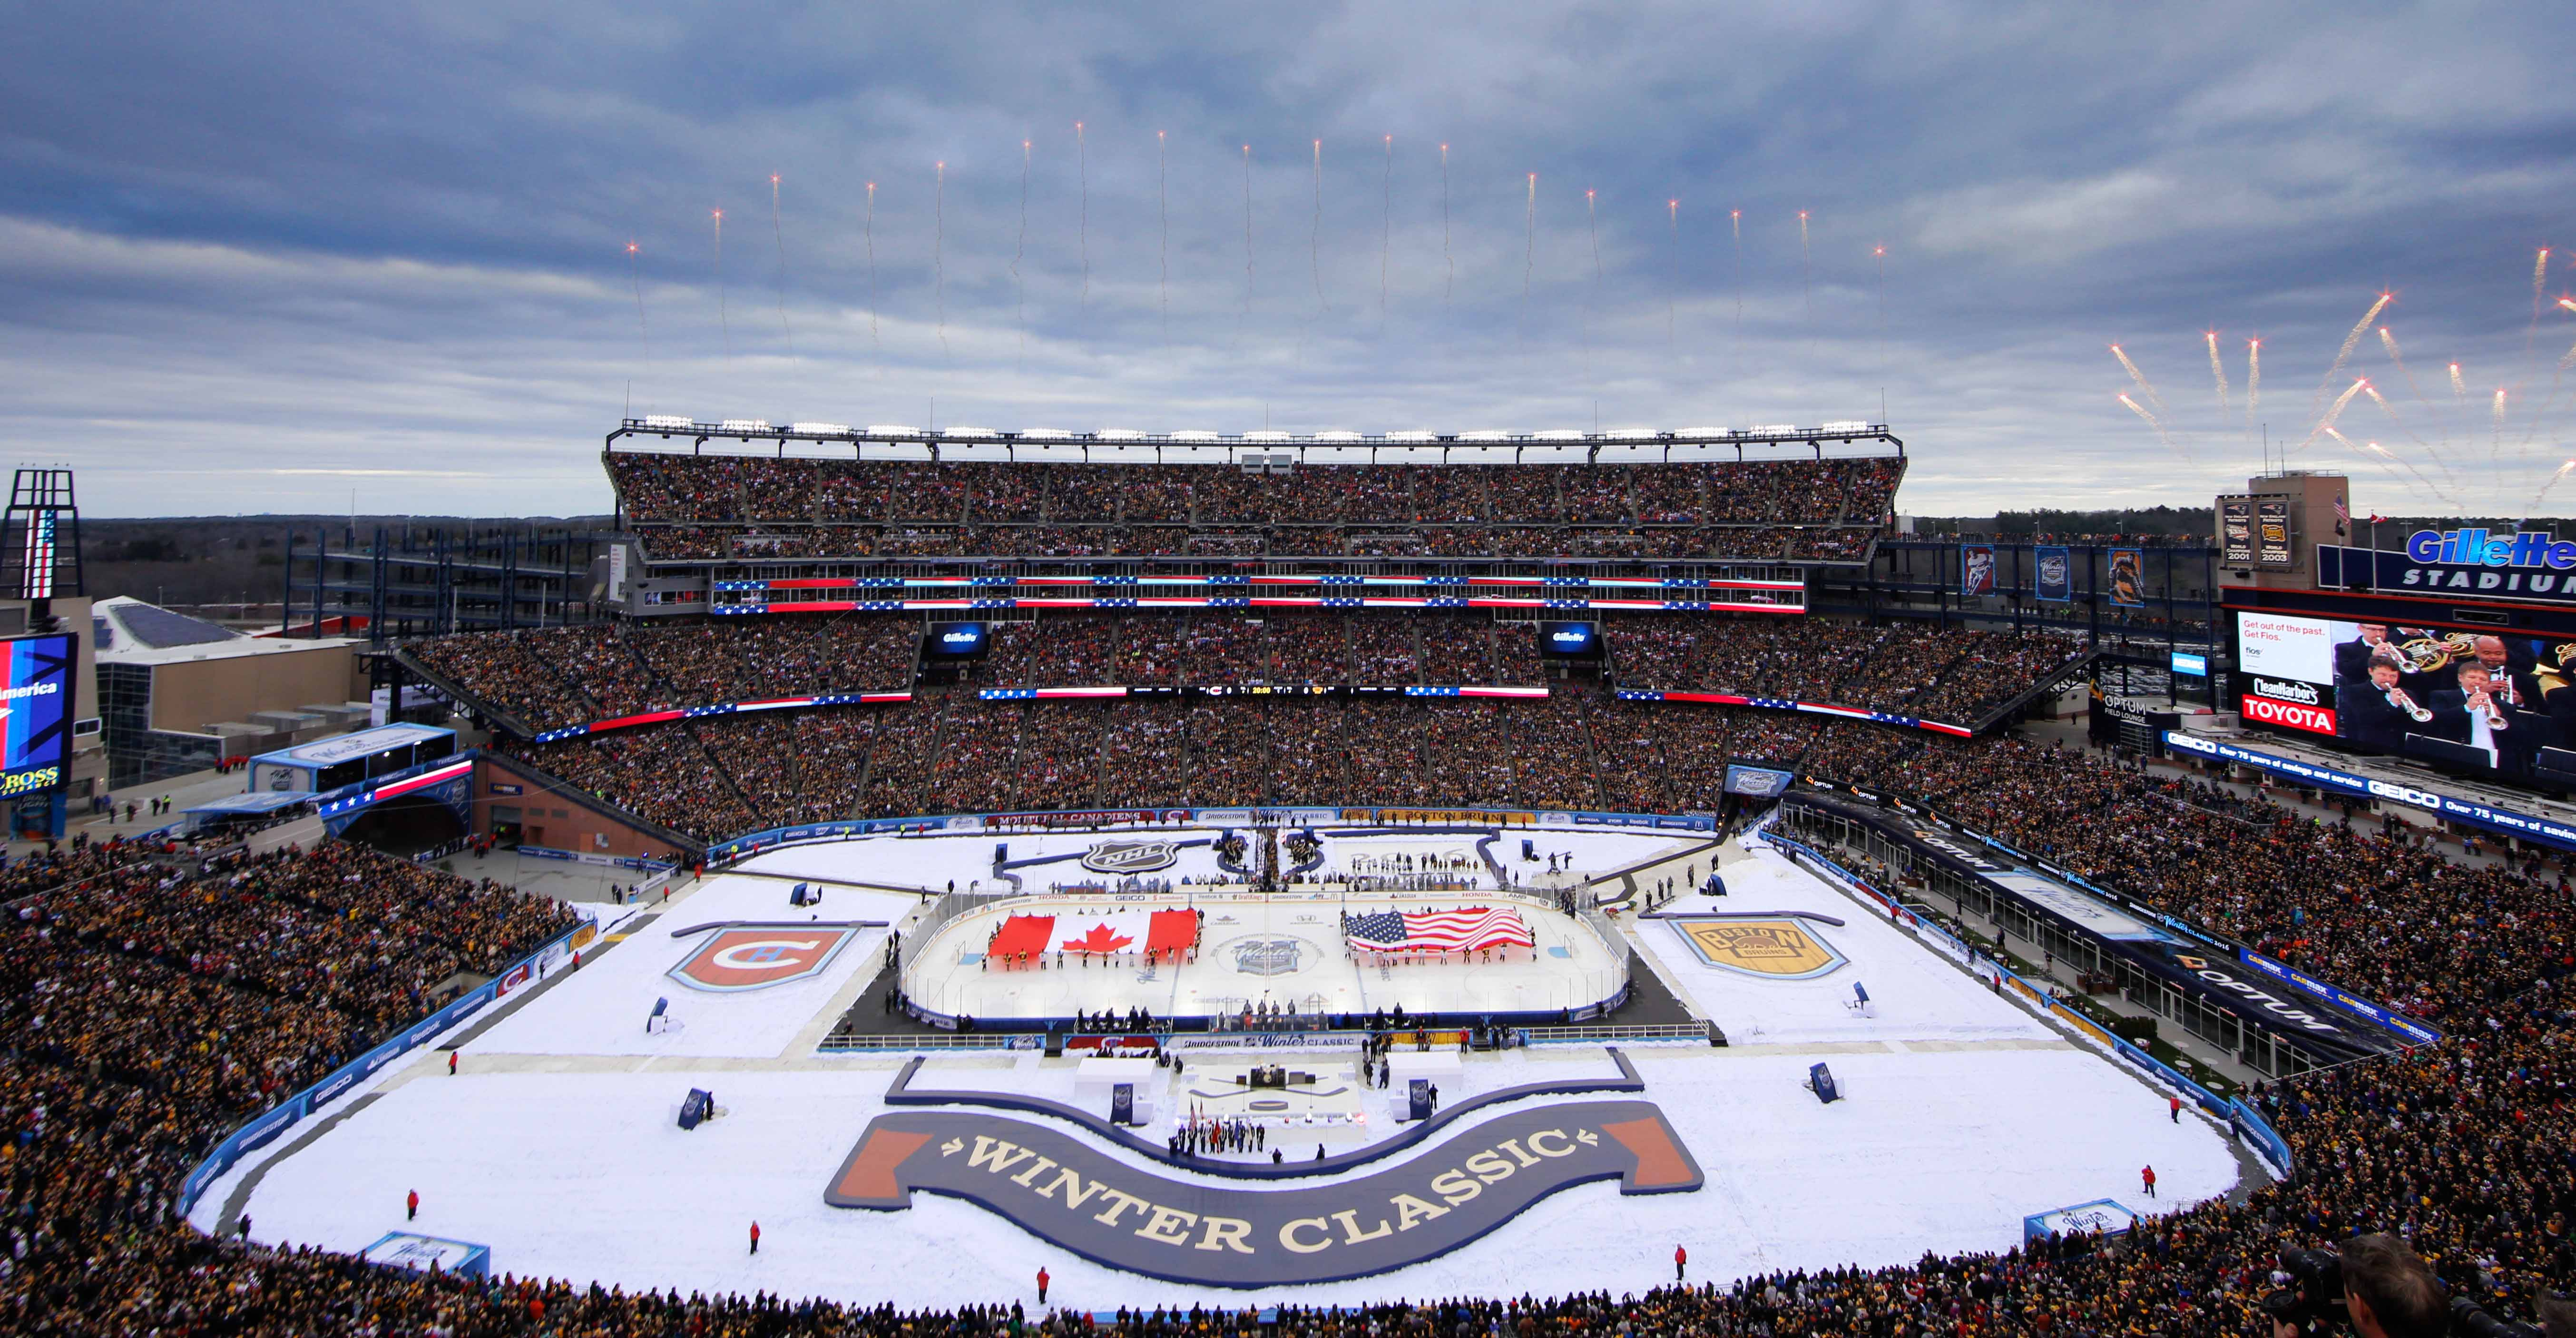 9112172-nhl-winter-classic-montreal-canadiens-at-boston-bruins